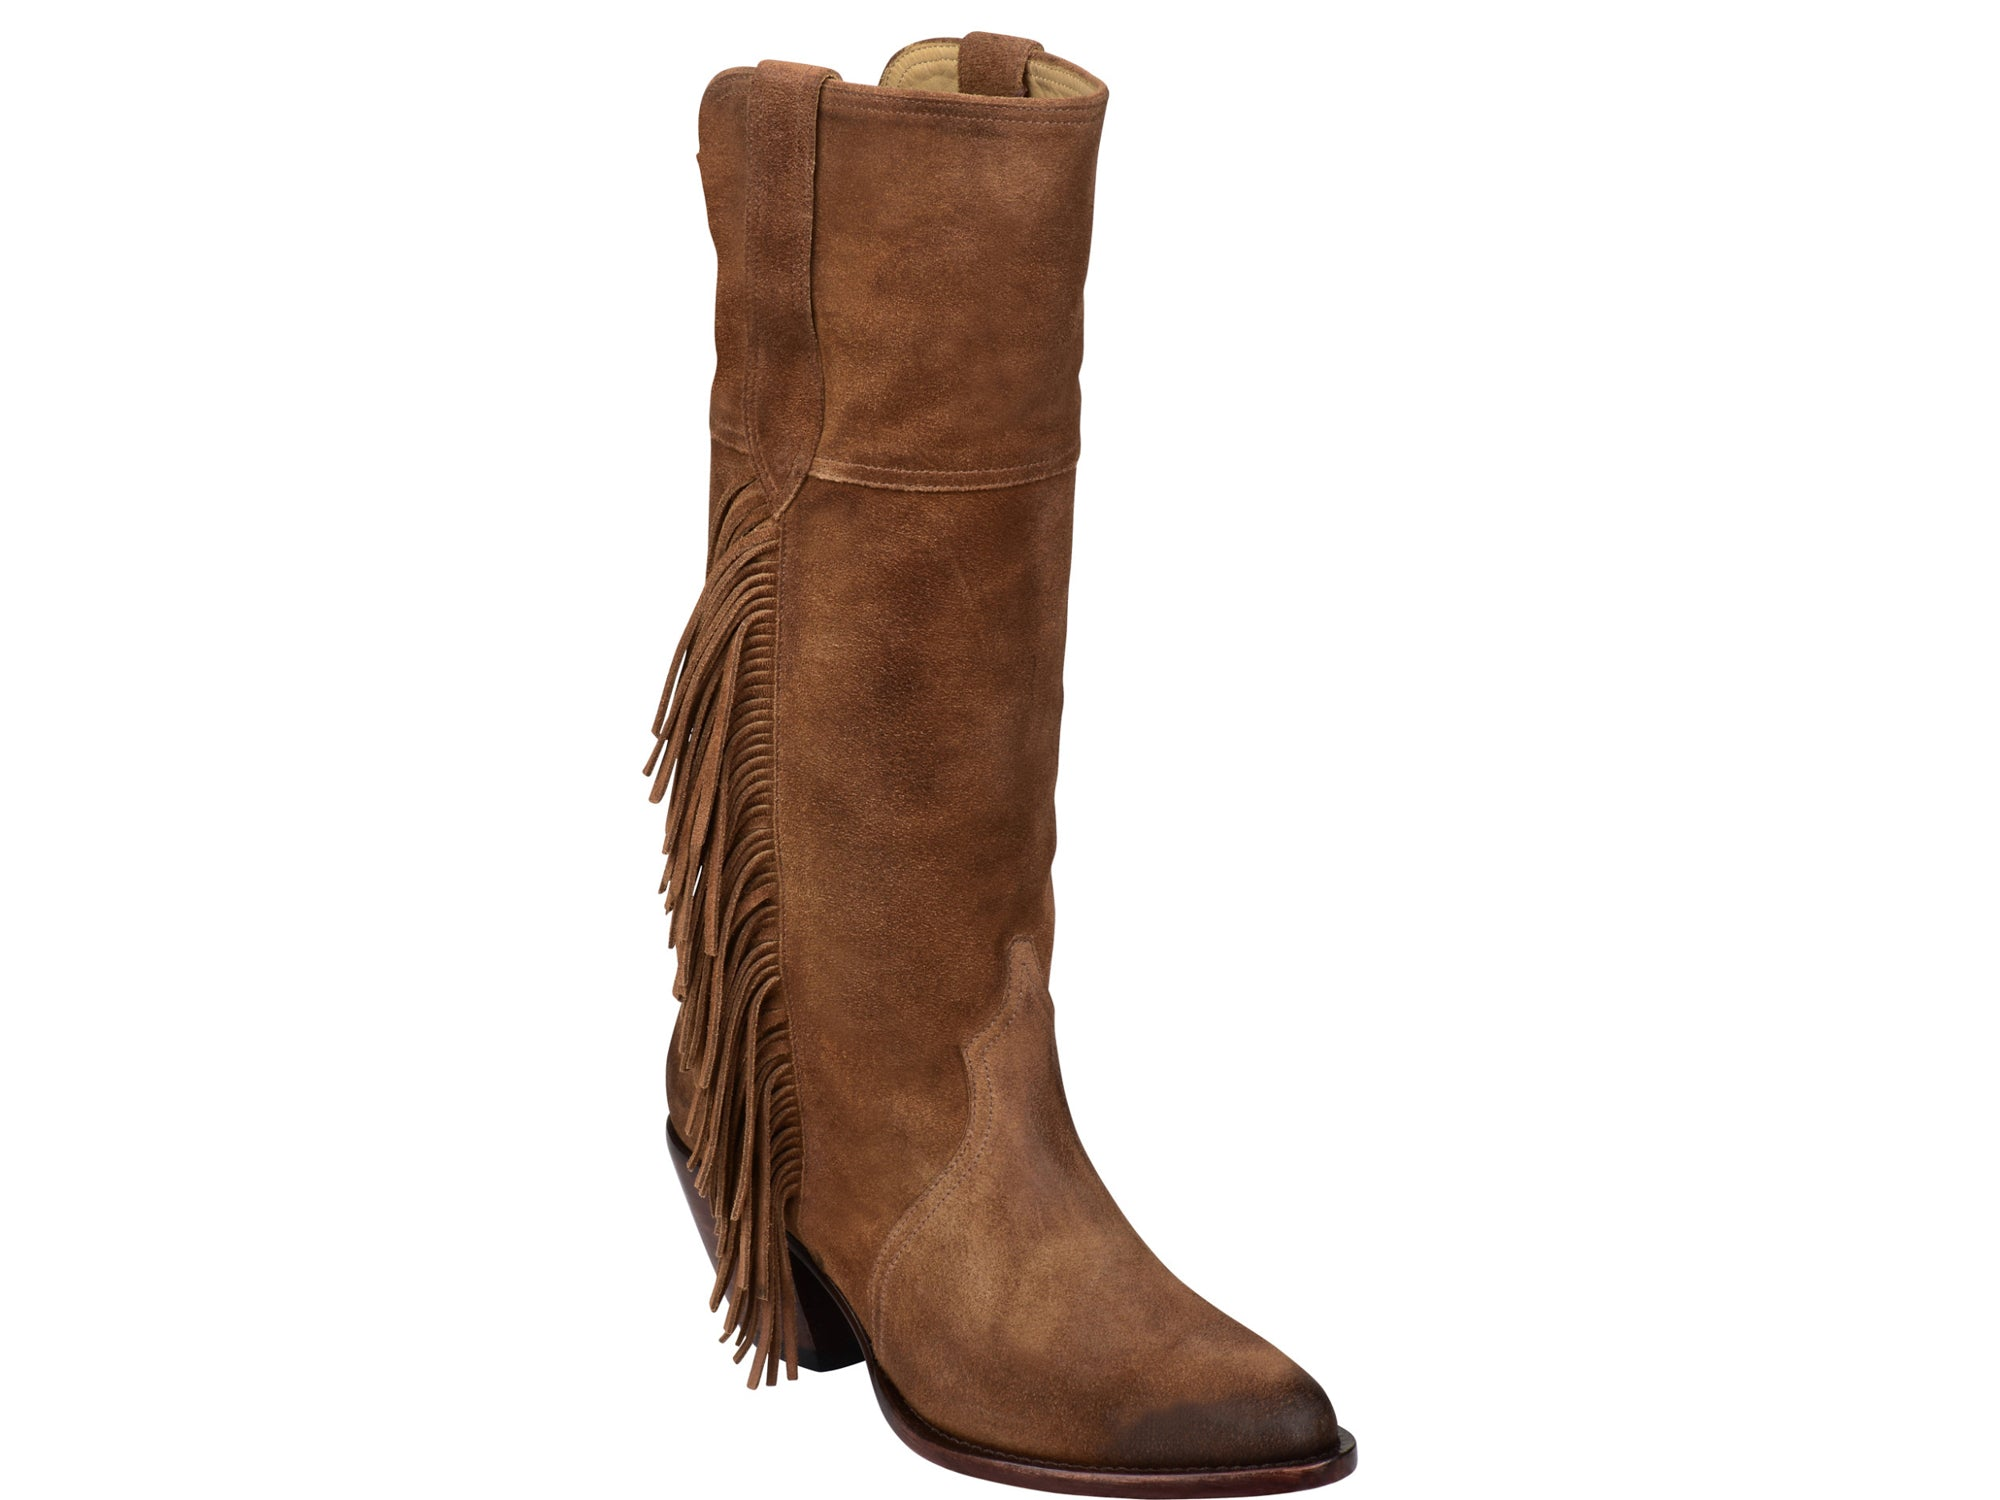 f9af04a1540 Lucchese Womens Cowboy Boots Bridle Brown Suede Leather